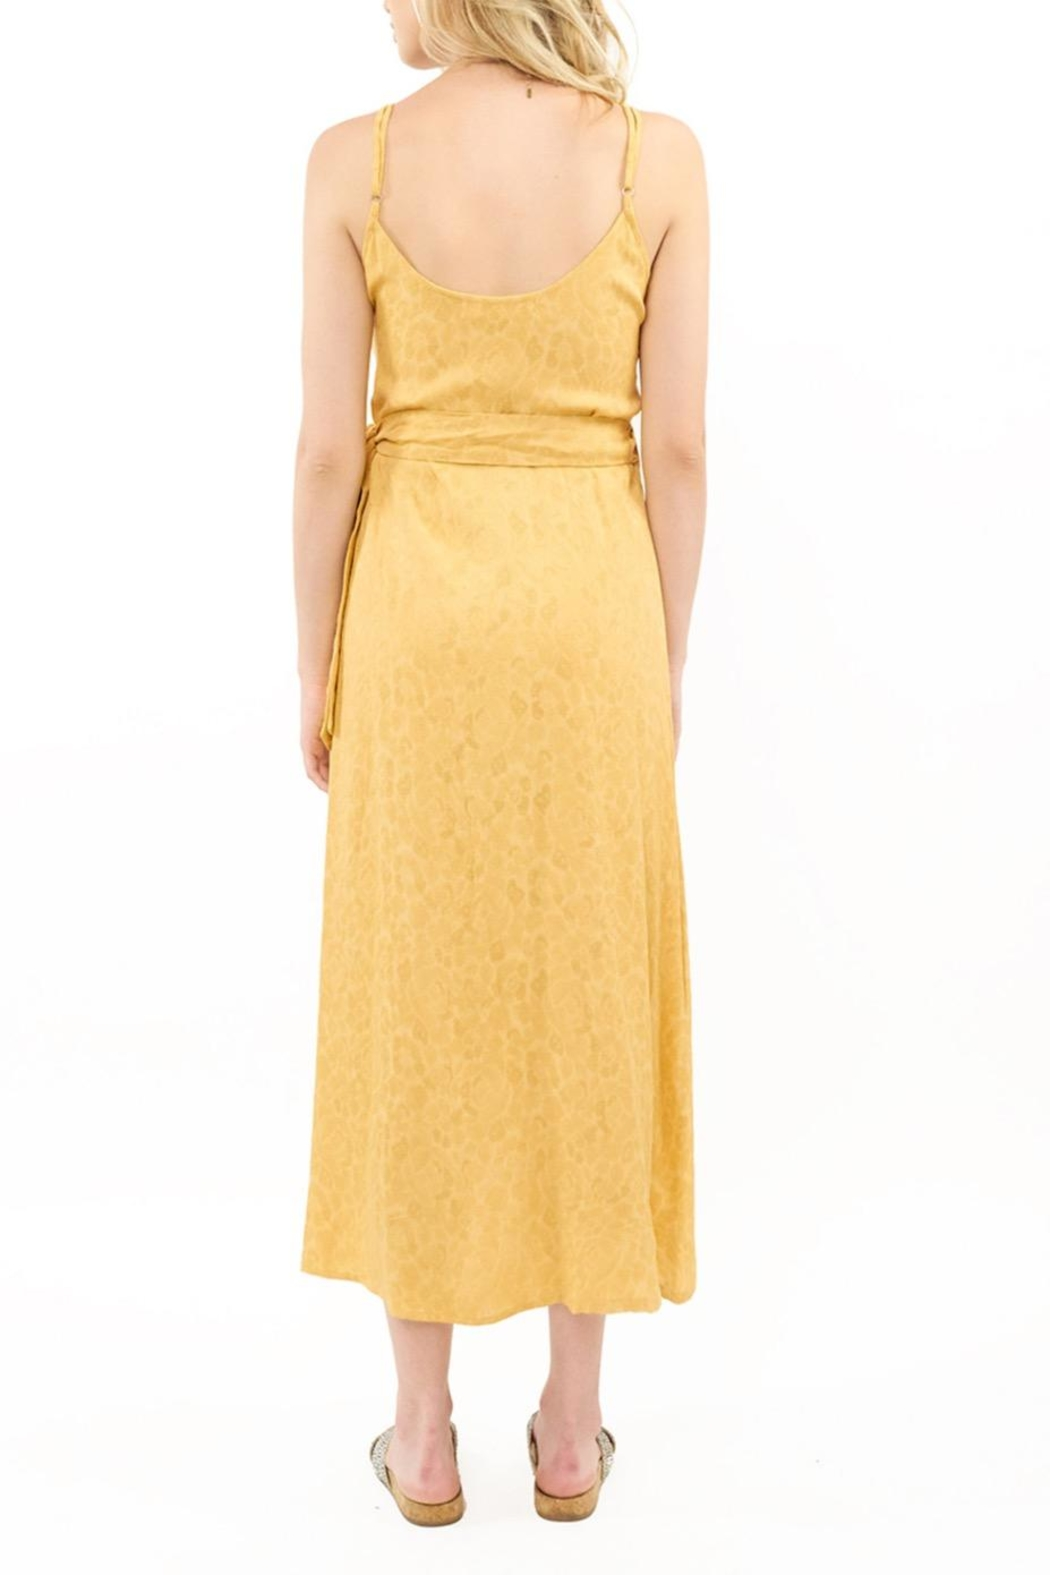 Saltwater Luxe Halsey Yellow Midi - Front Full Image